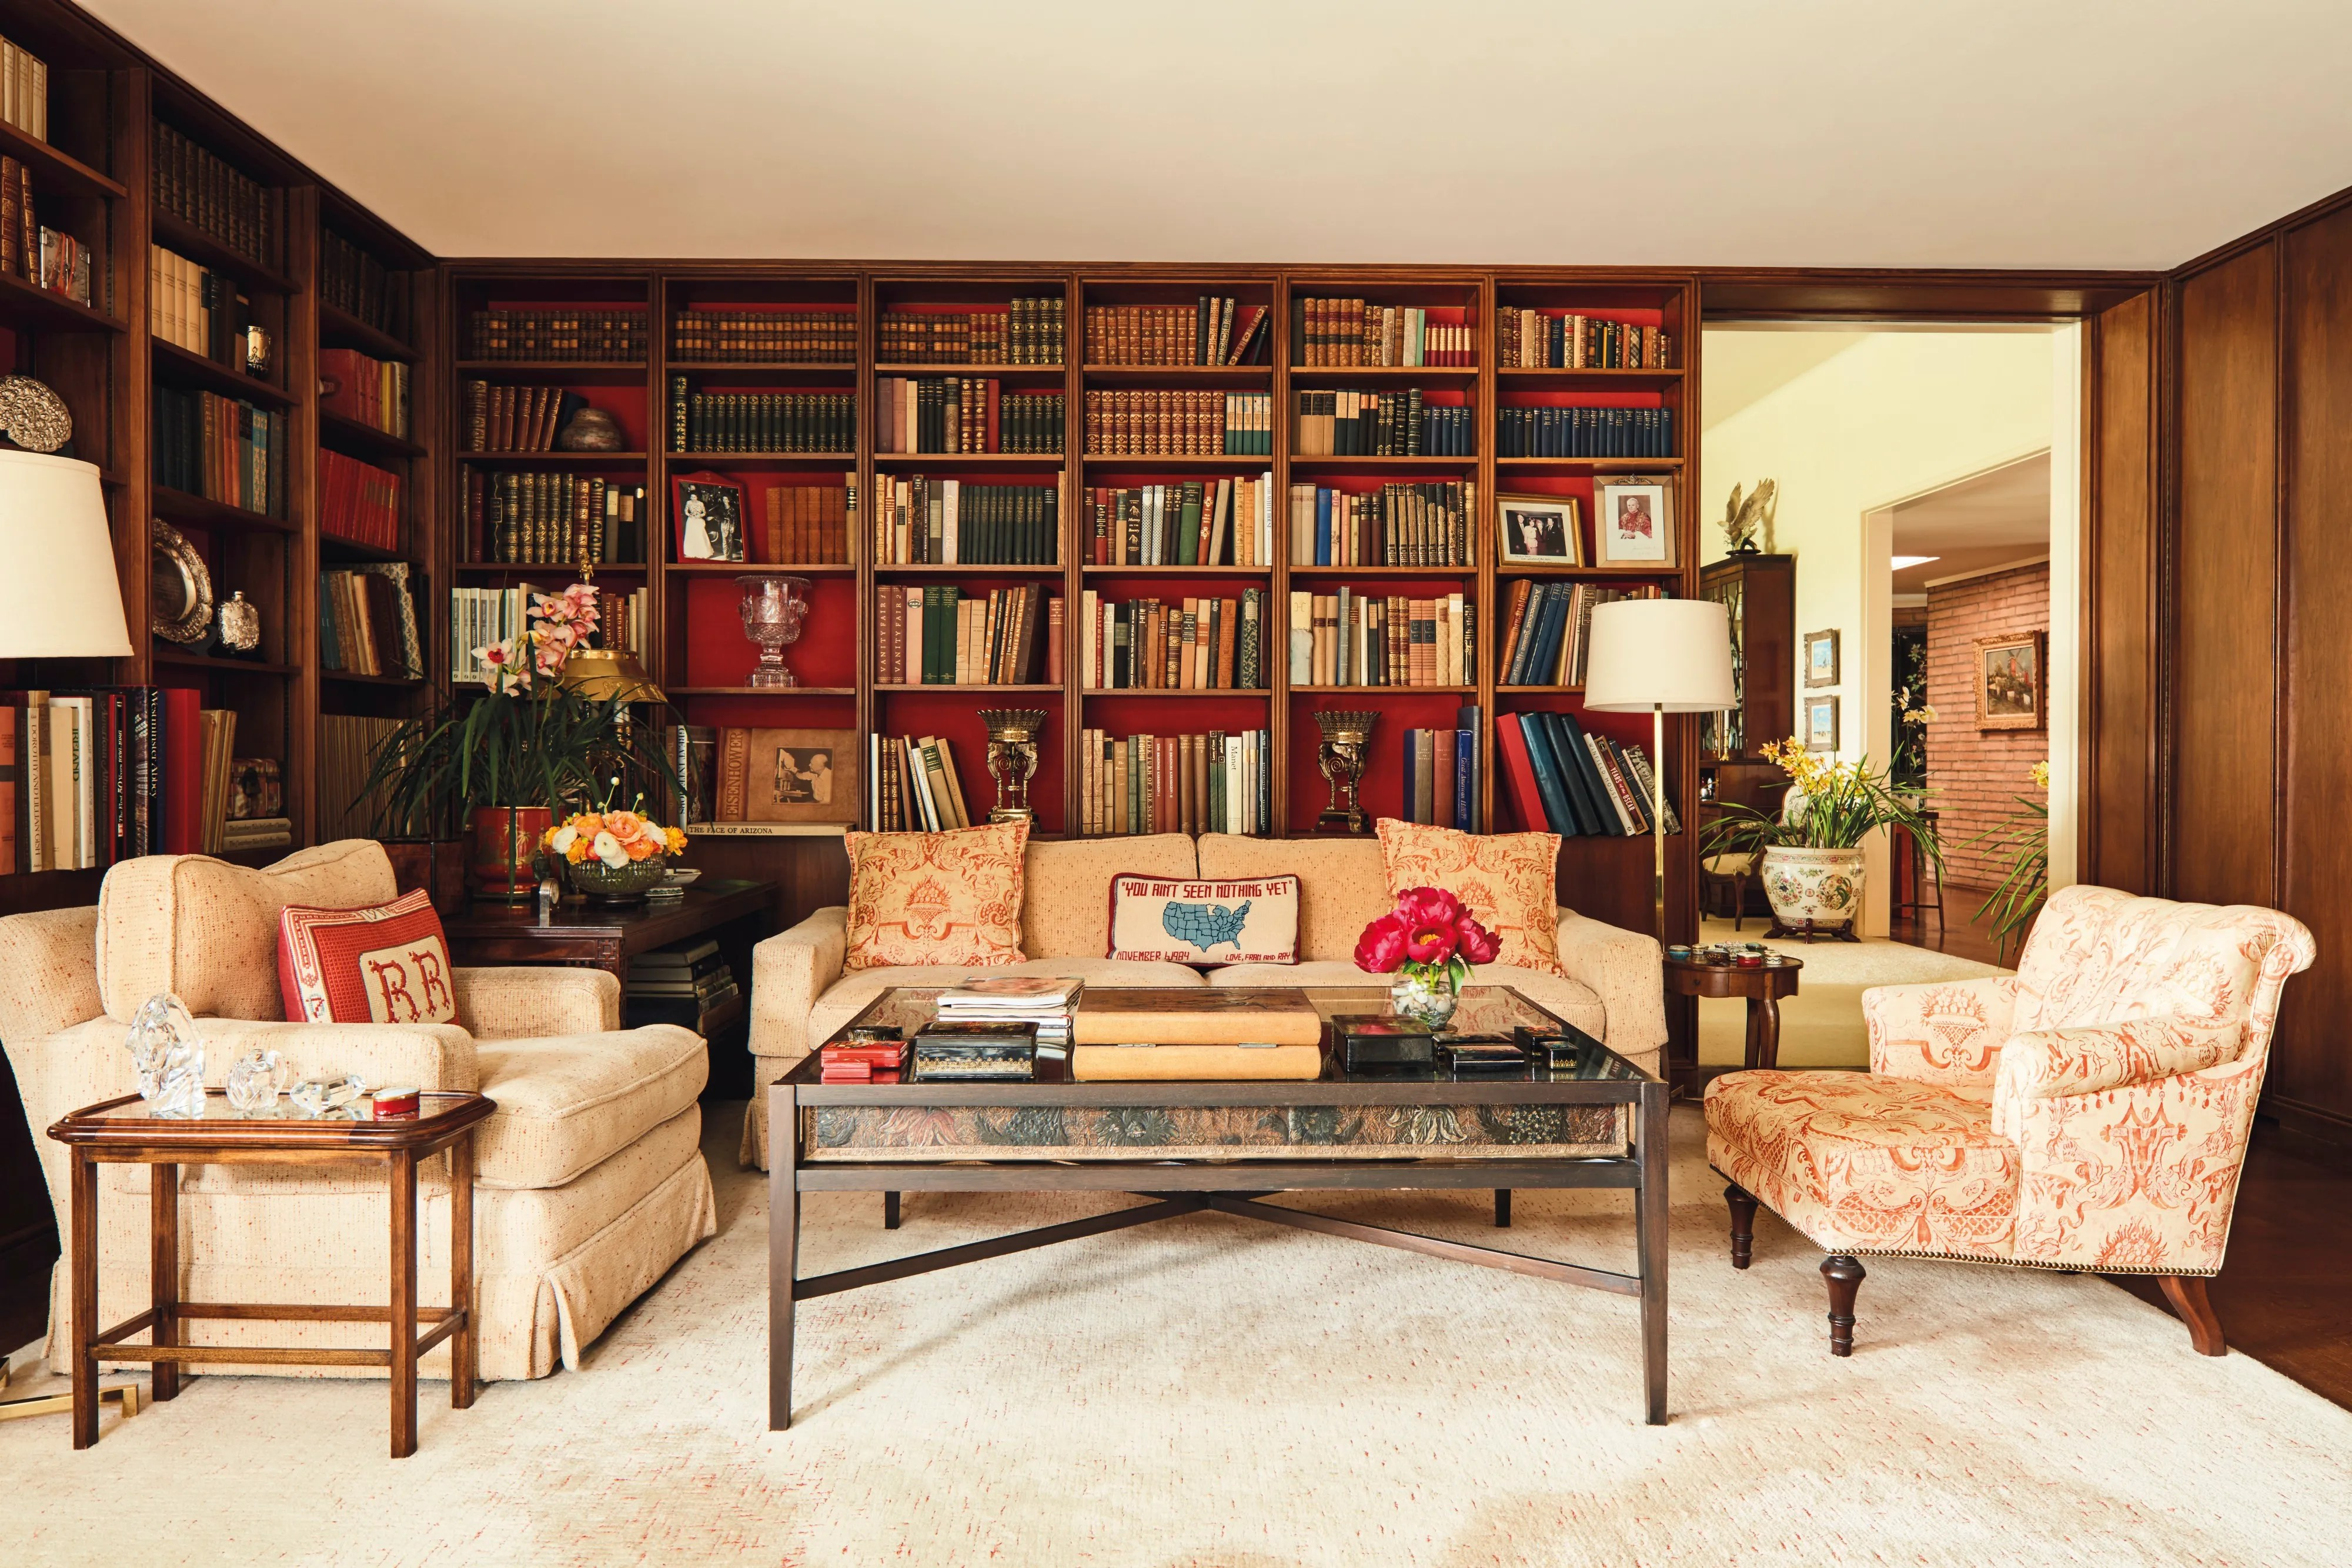 See Inside Ronald And Nancy Reagans Bel Air Home